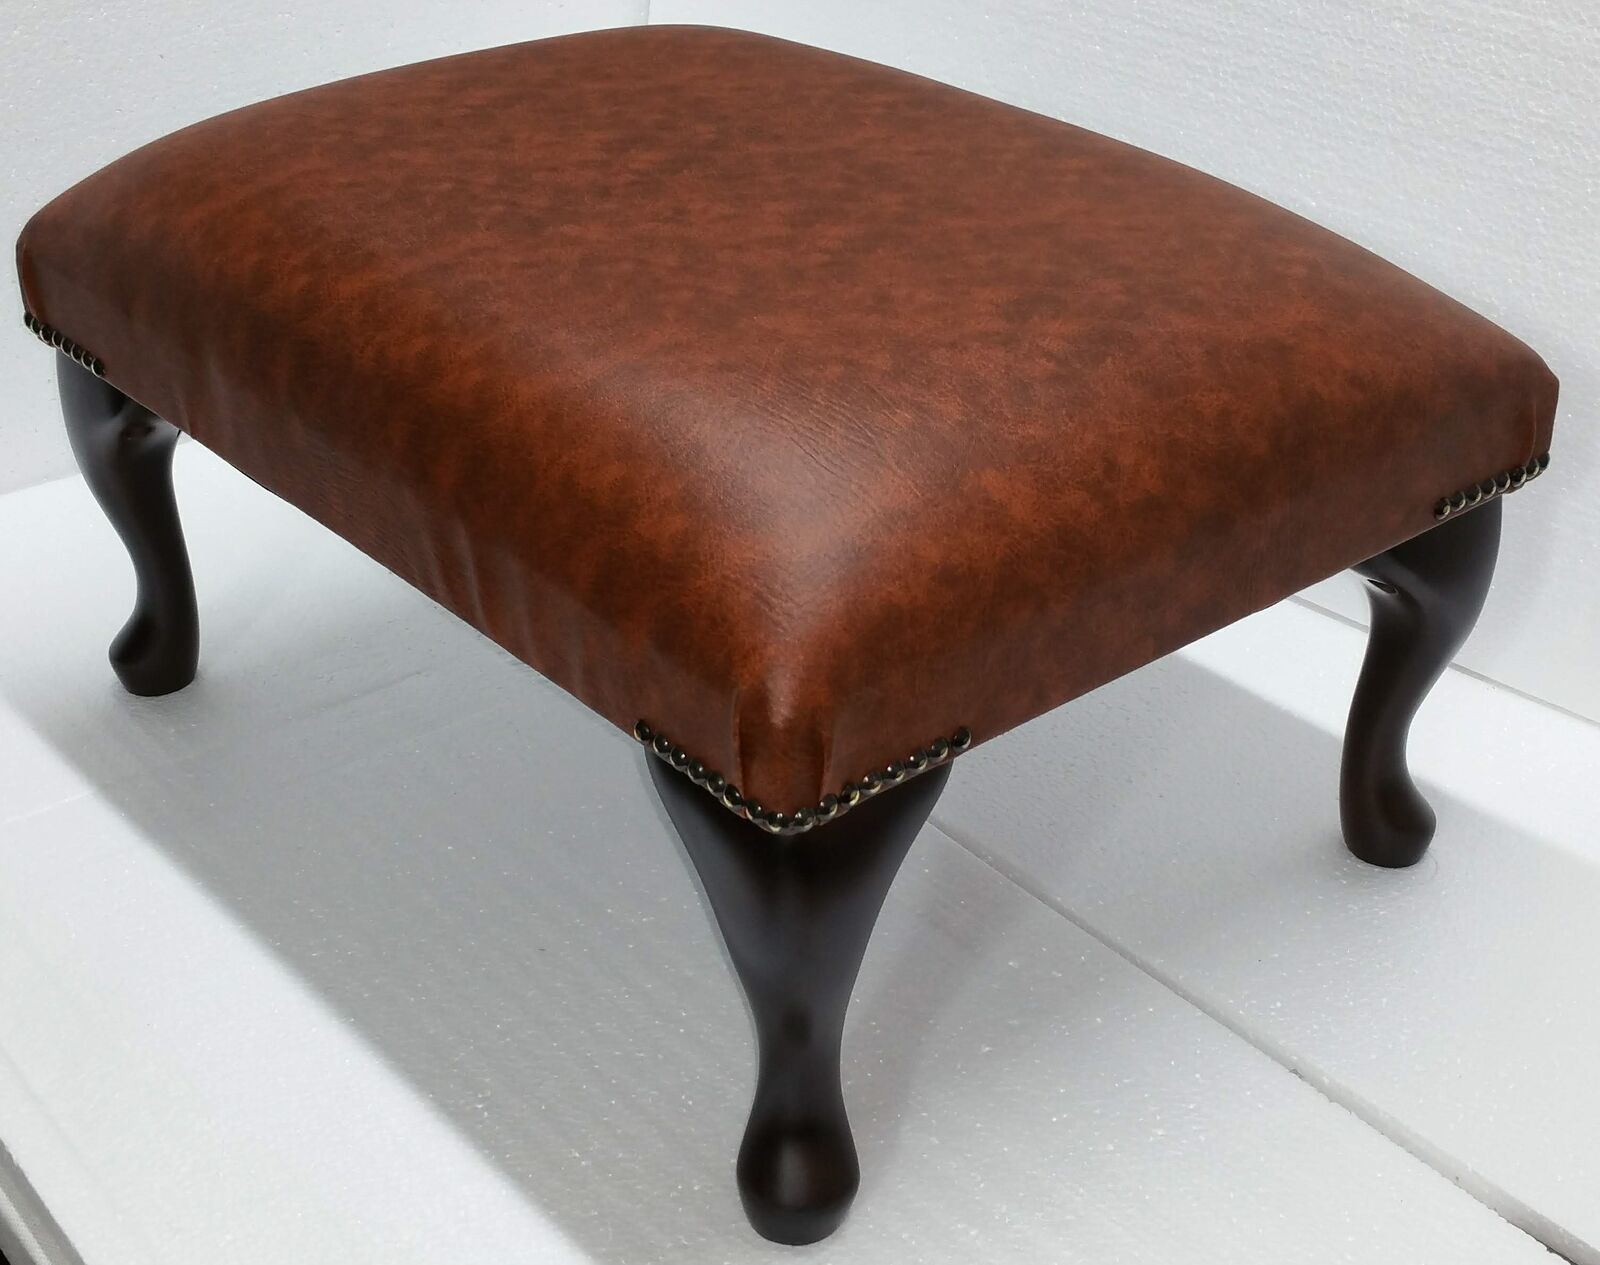 Chesterfield Deep Cushioned Queen Anne Footstool Tan Faux Leather